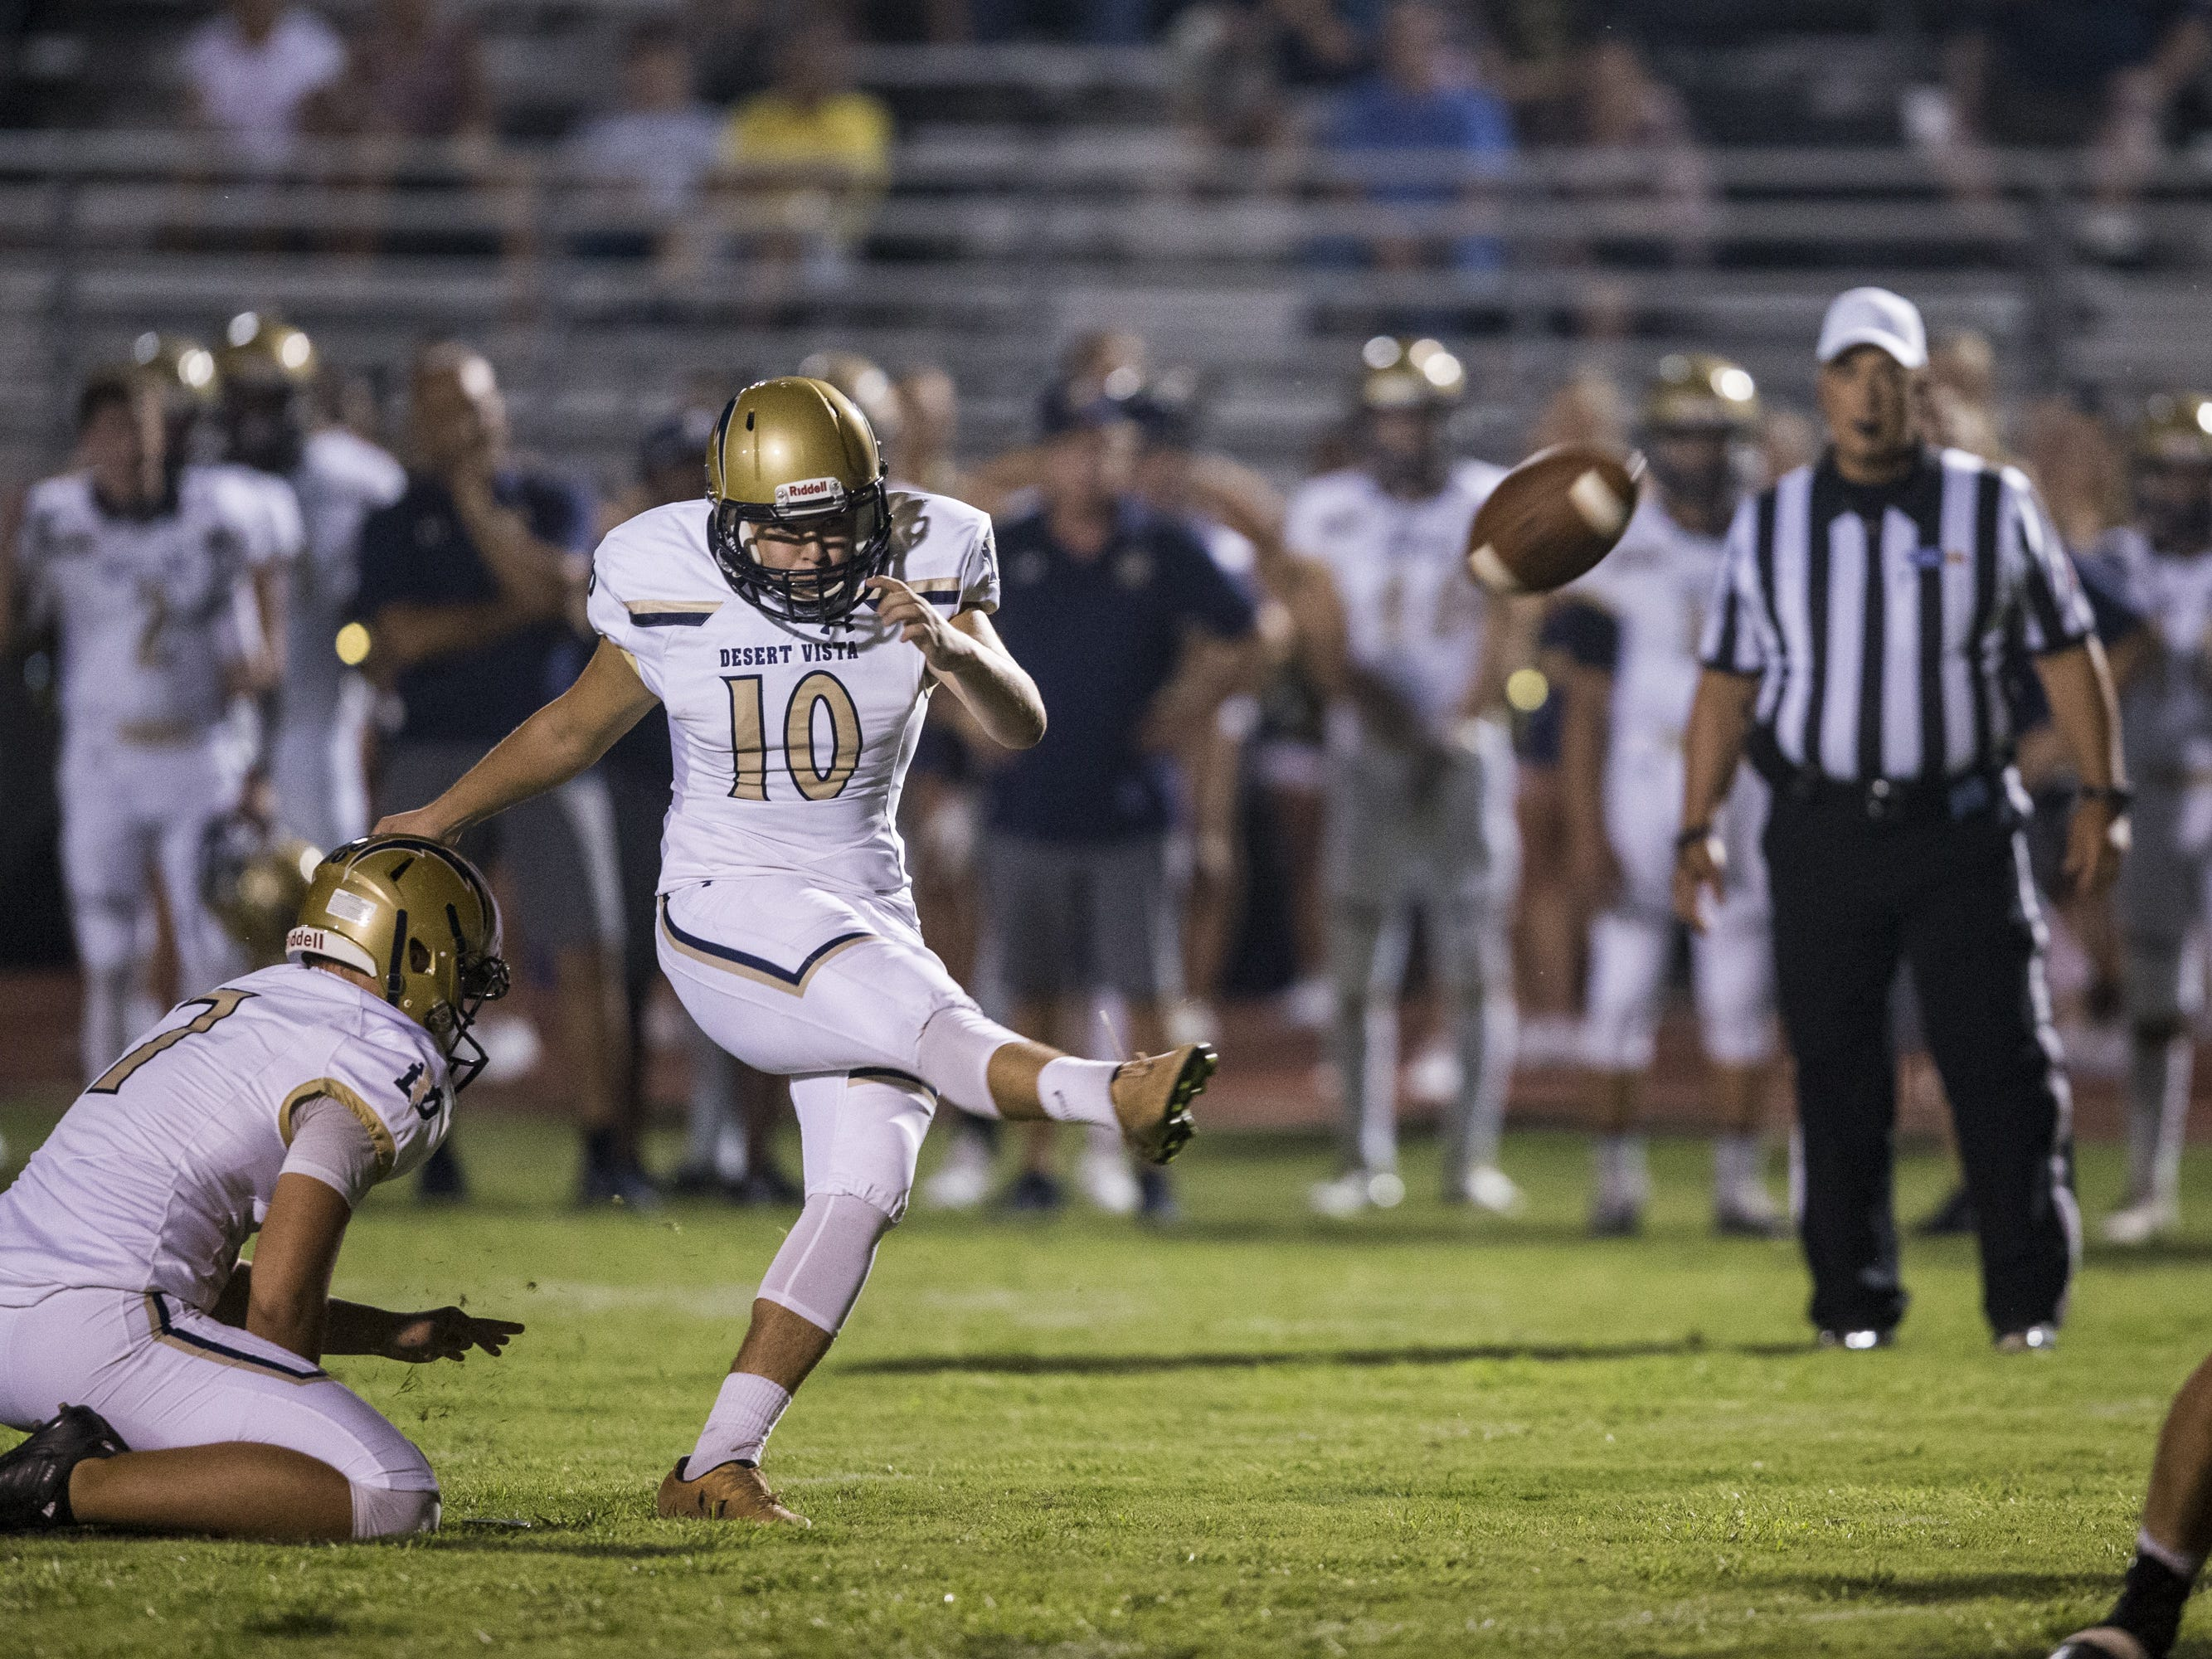 Desert Vista's Matt Lewis attempts a field goal against Highland in the 1st quarter on Friday, Sept. 21, 2018, at Highland High School in Gilbert, Ariz.   #azhsfb